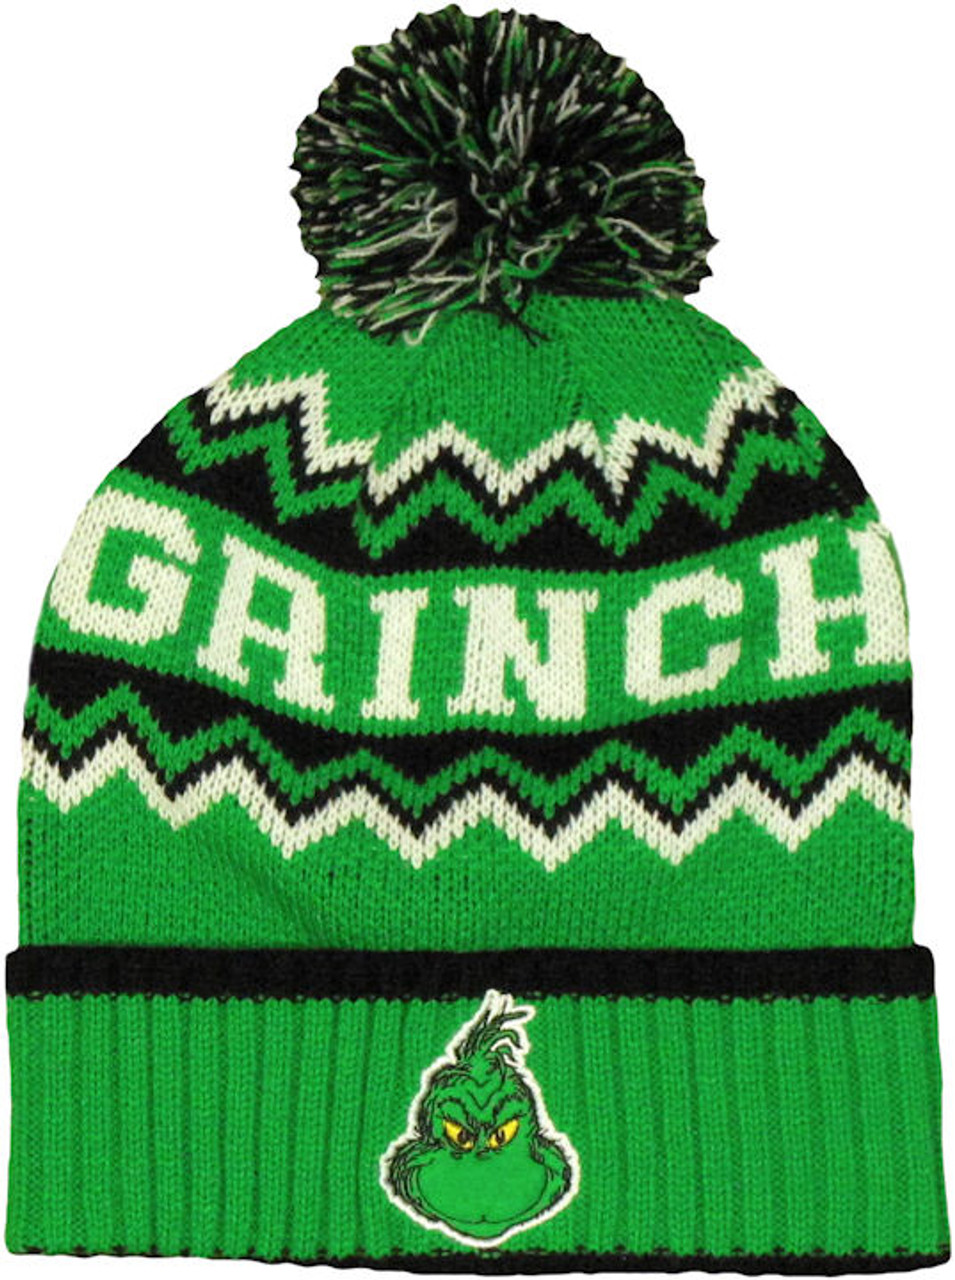 dr-seuss-grinch-name-pom-beanie-3  06856.1512199831.jpg c 2 imbypass on 55d73538e4a